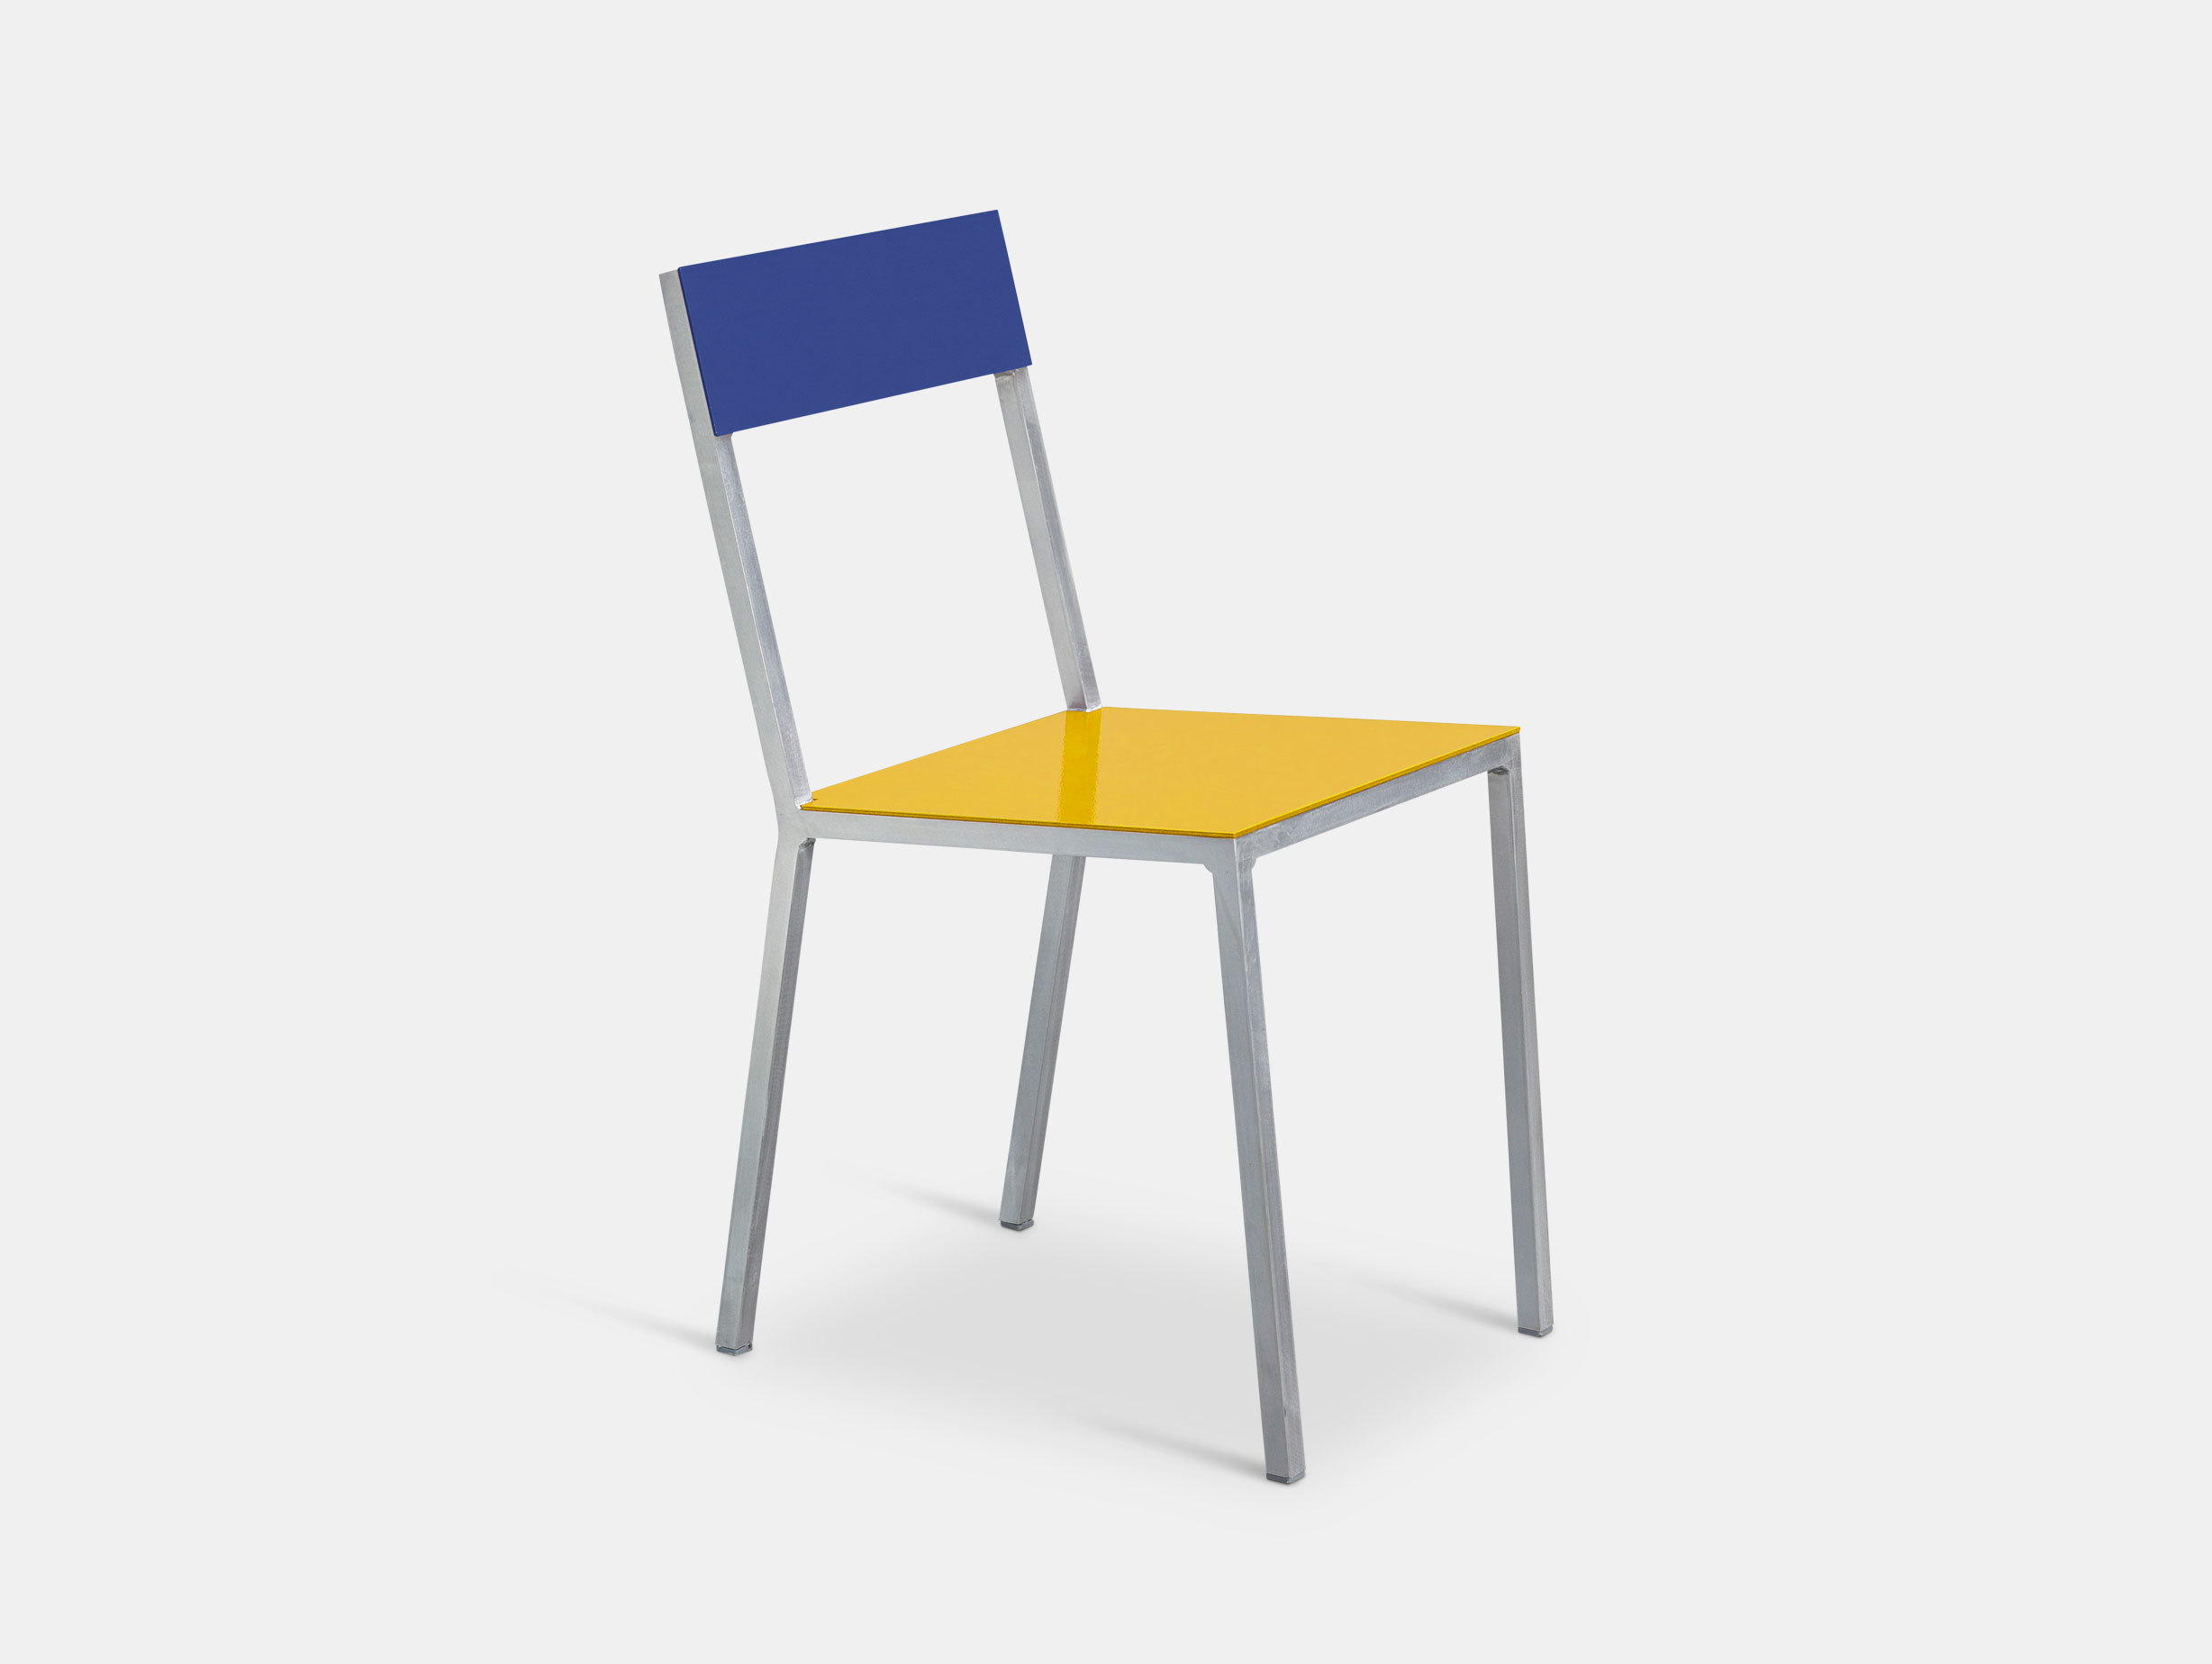 Alu Chair image 8